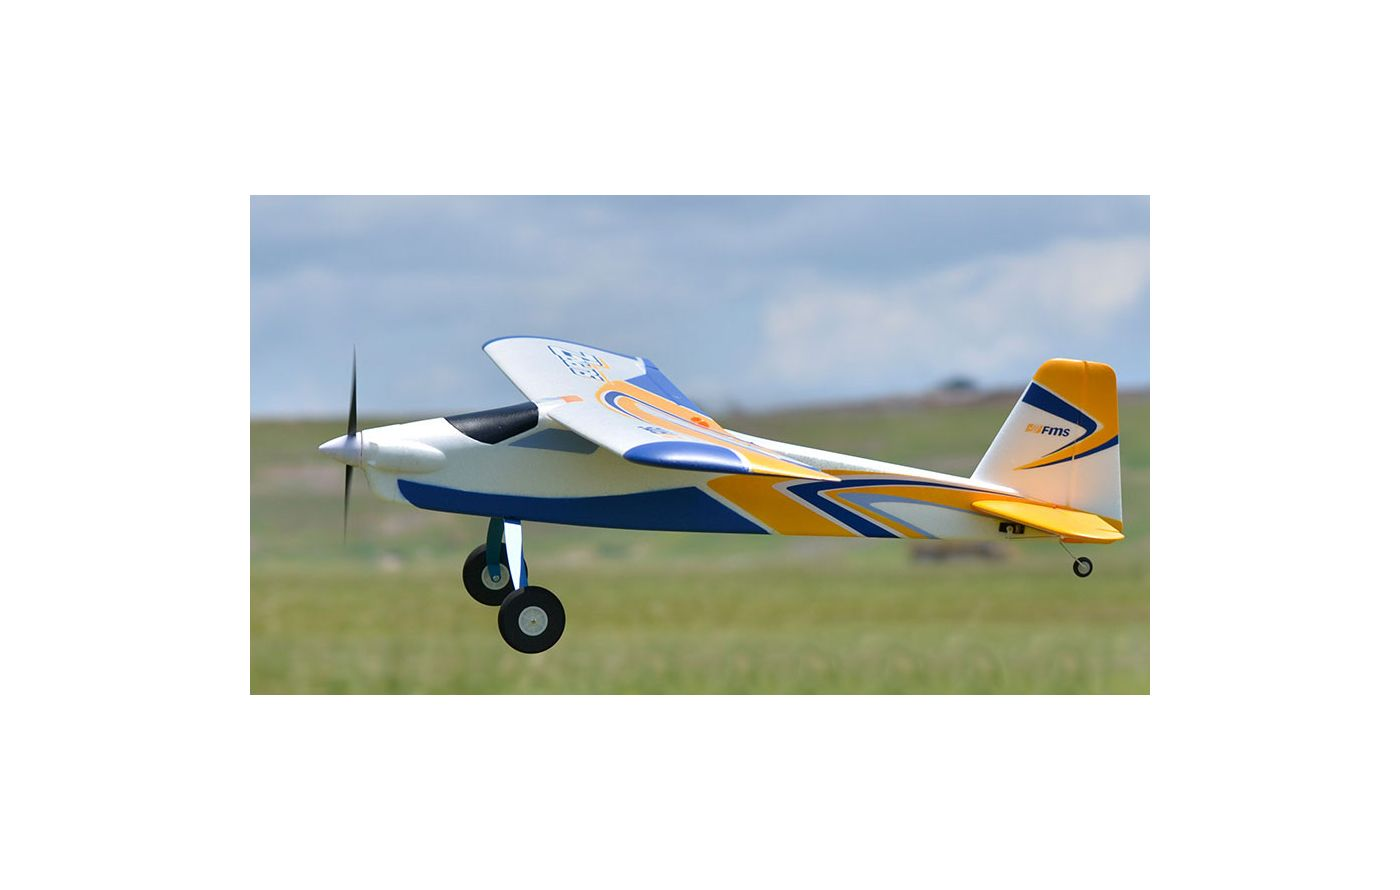 Image for Super EZ RTF, 1220mm from Force RC